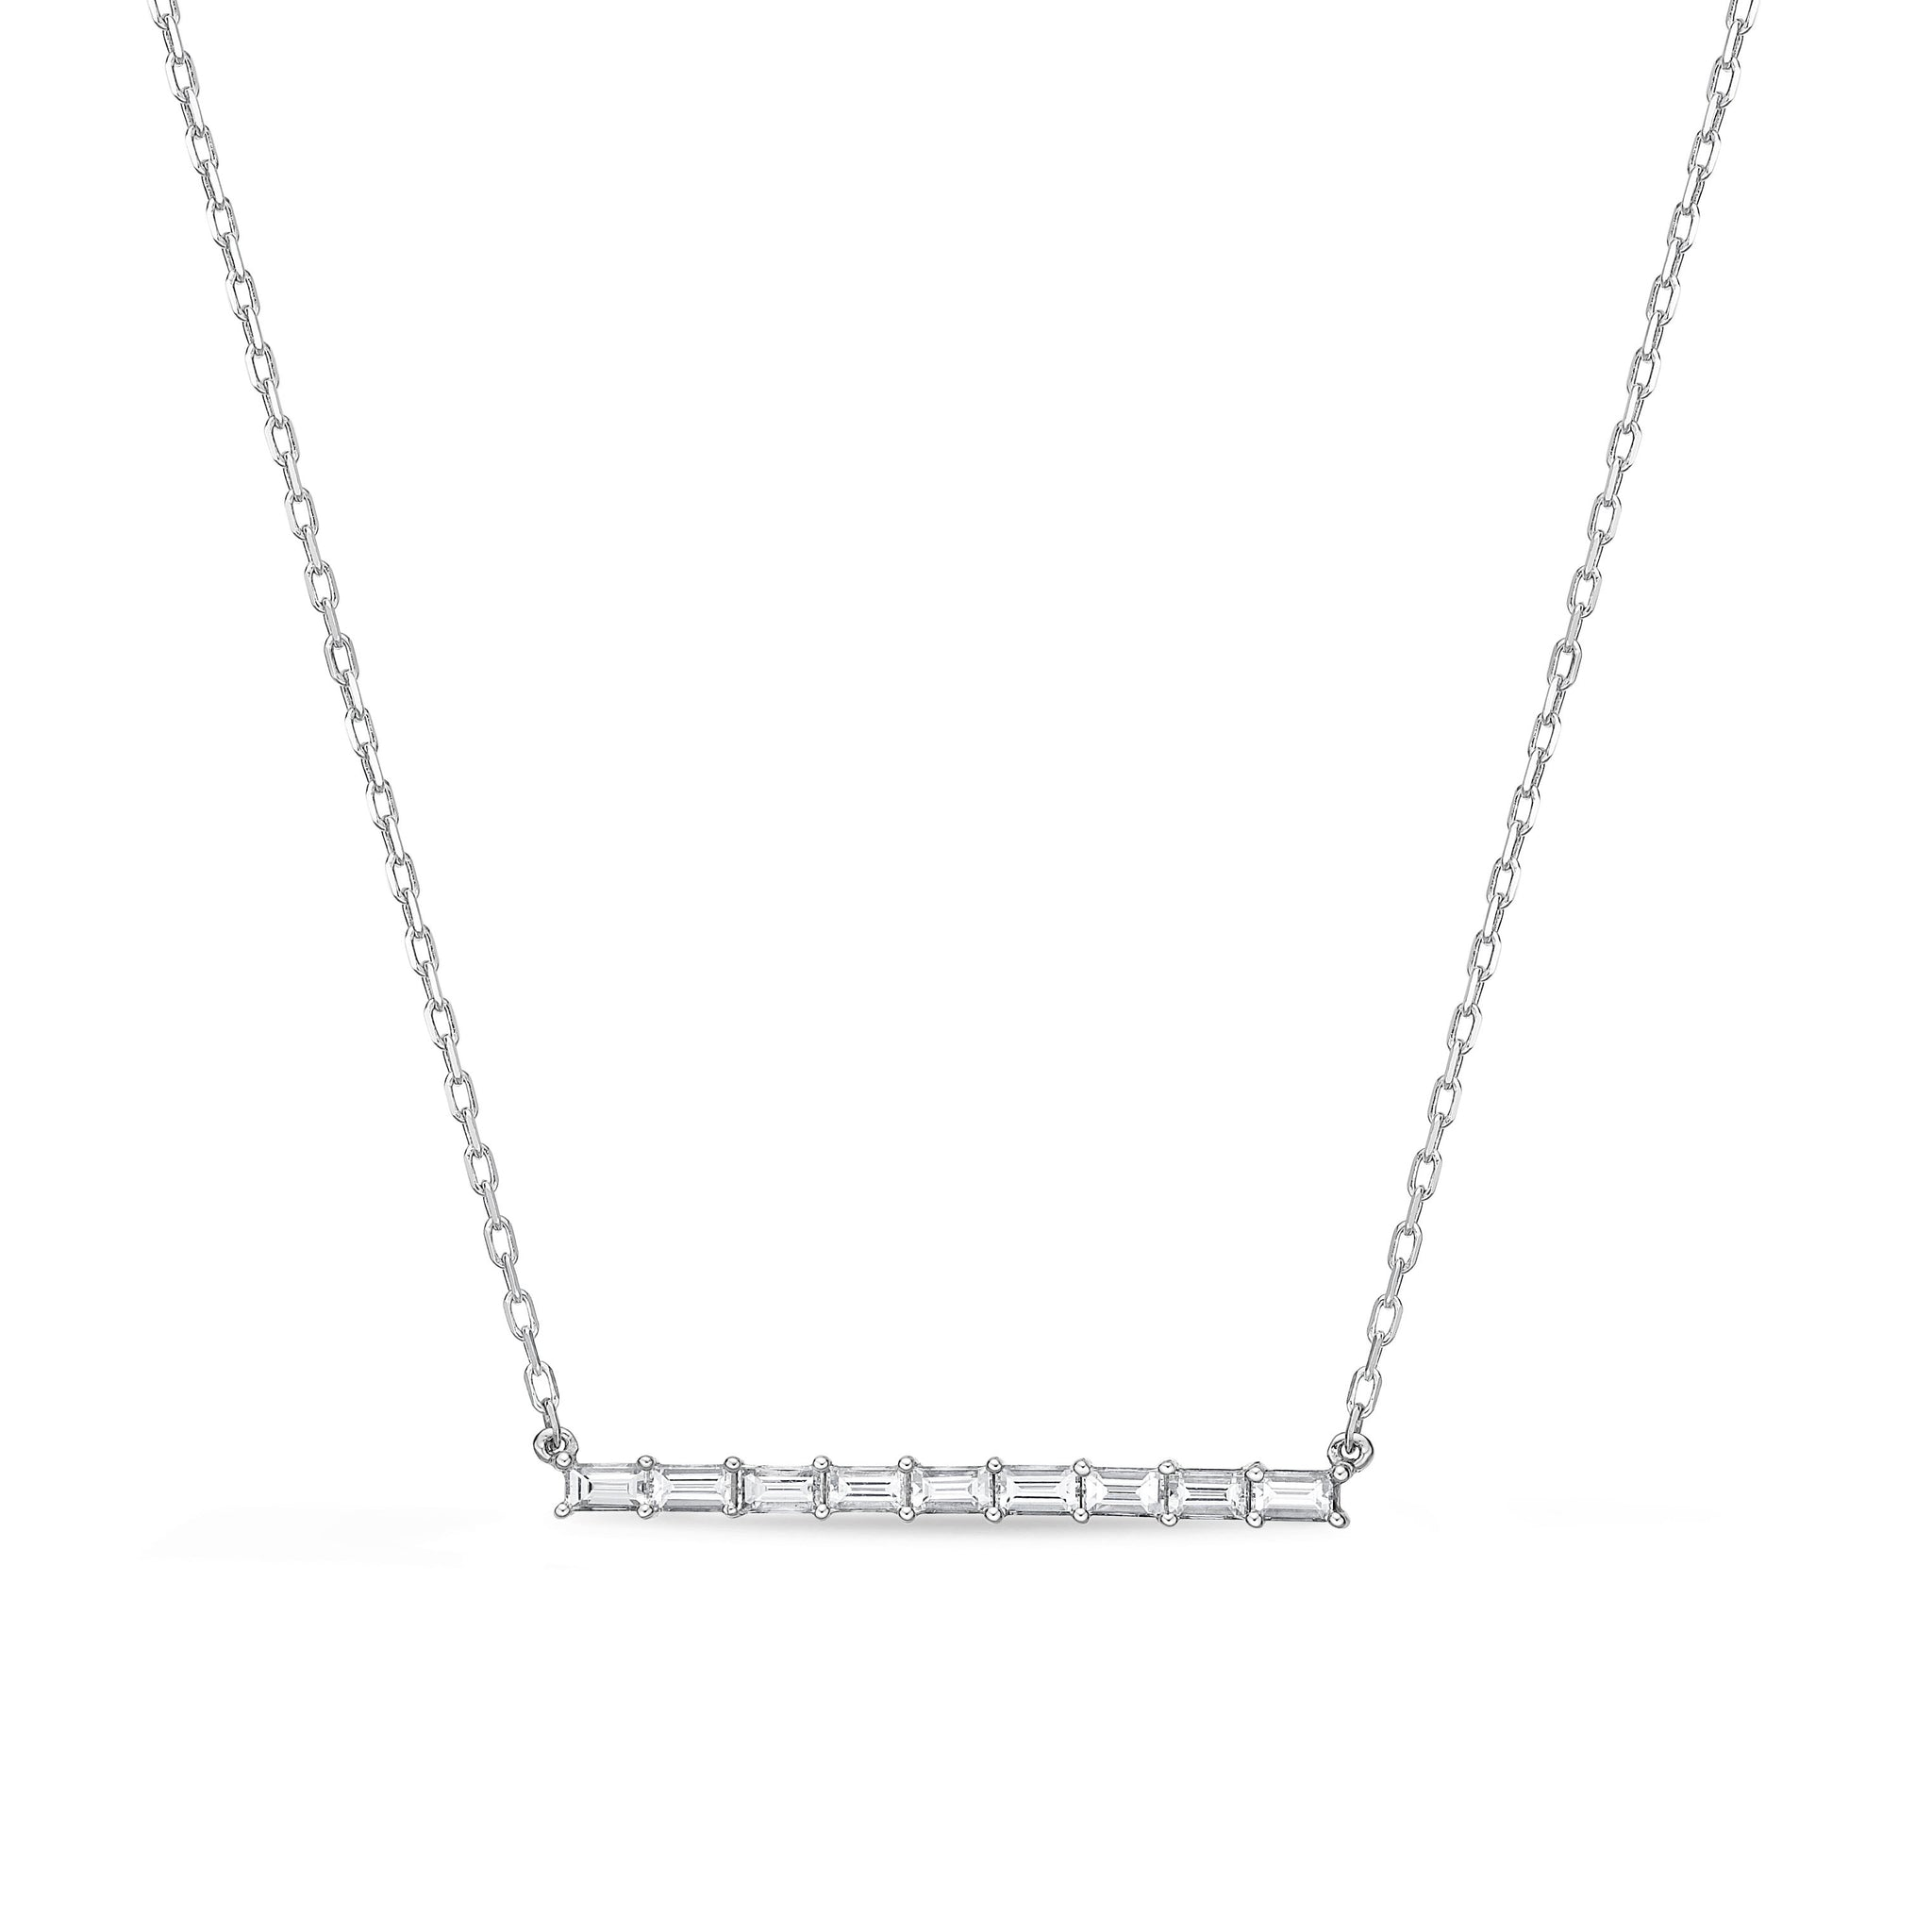 18K White Gold Baguette Bar Necklace